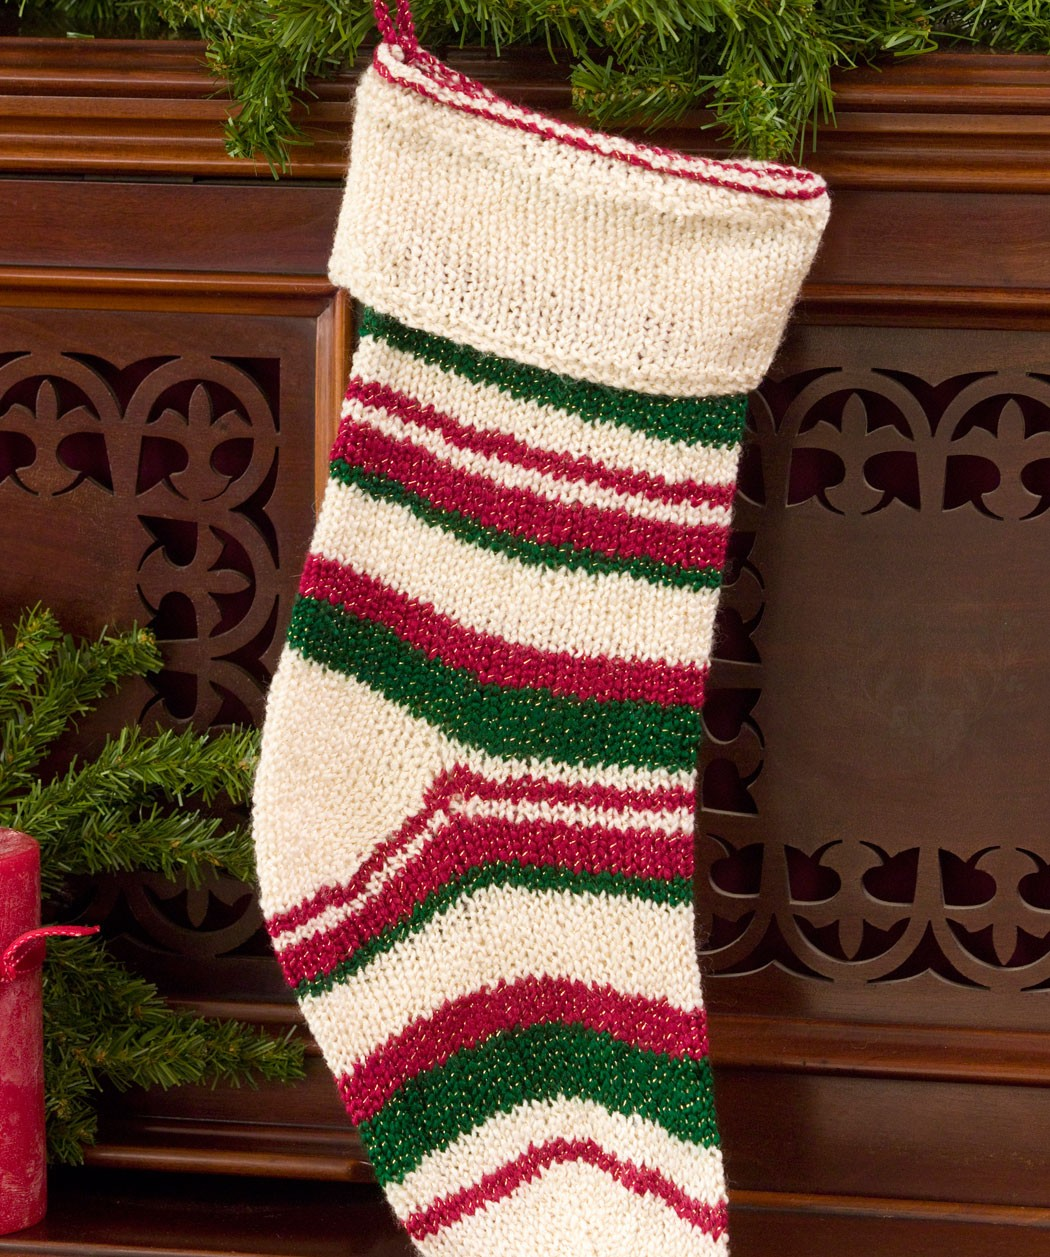 Knit Christmas Stockings Patterns : Free Knitting Patterns Christmas Socks images